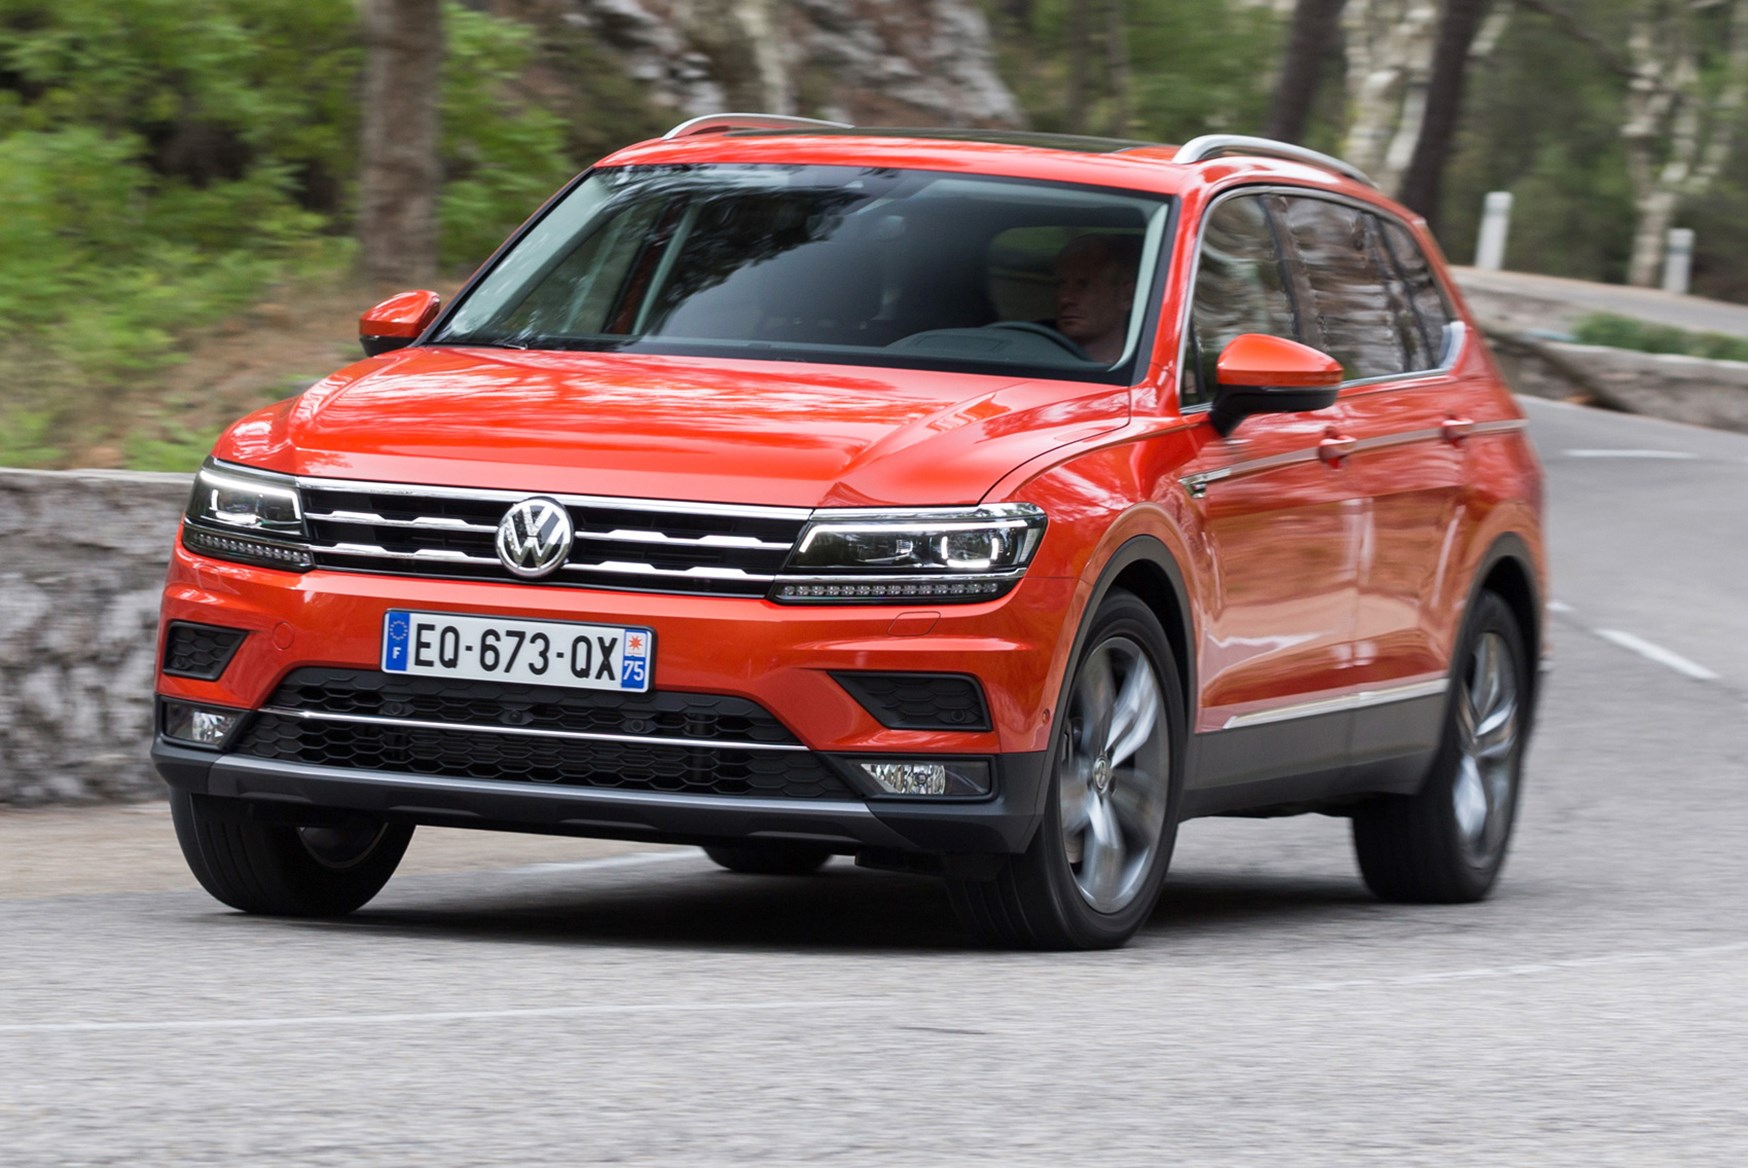 vw-tiguan-01 Interesting Info About 2018 Vw Tiguan R Line with Mesmerizing Pictures Cars Review